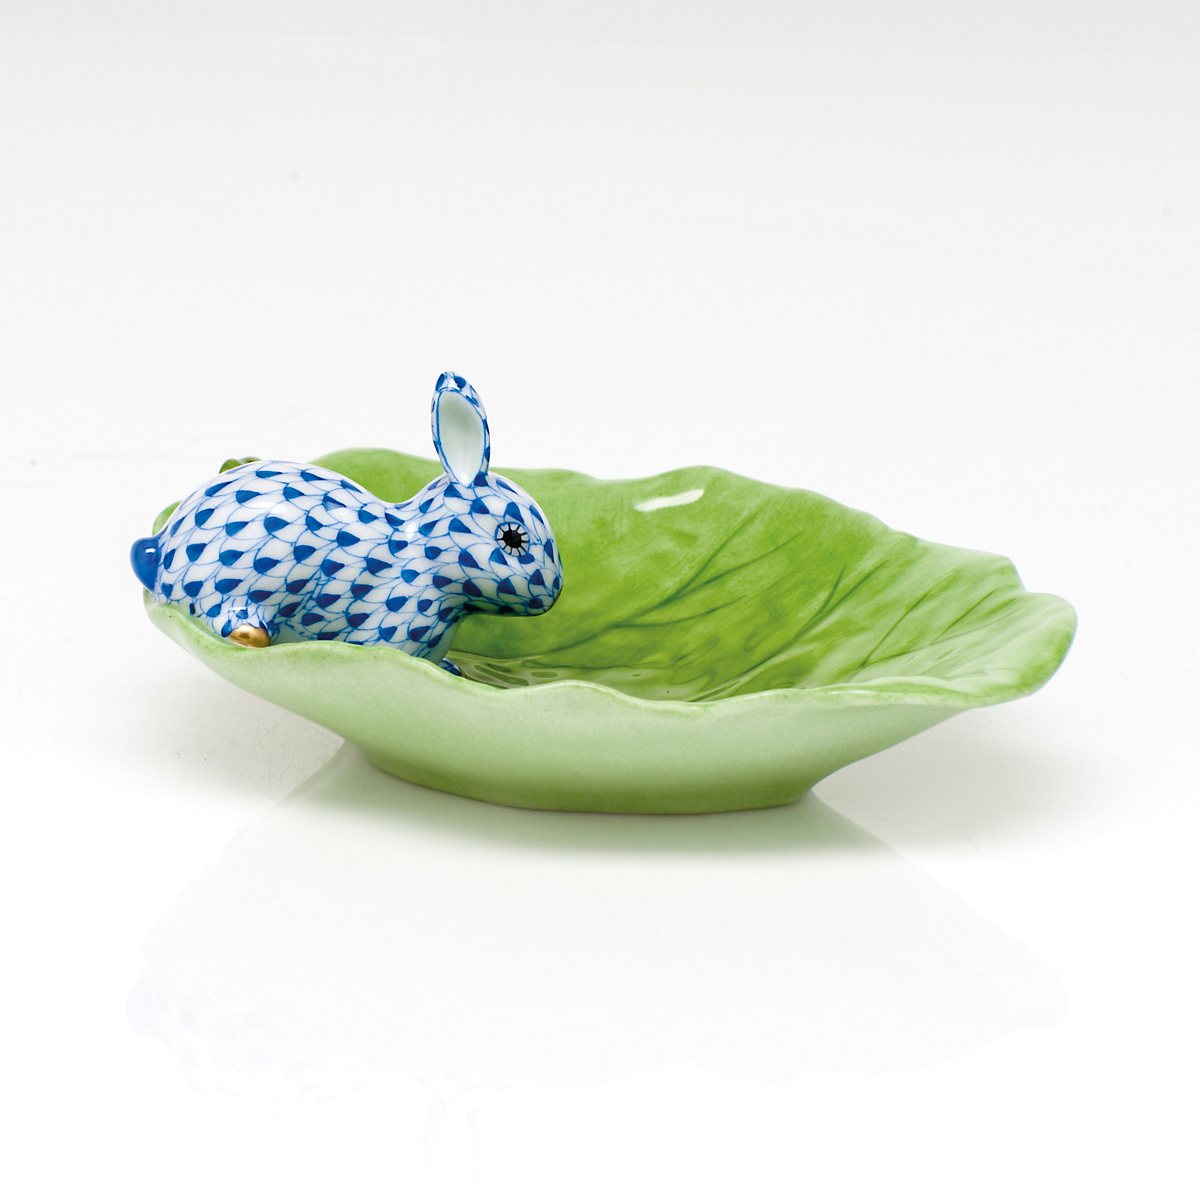 Herend Bunny & Cabbage, Sapphire